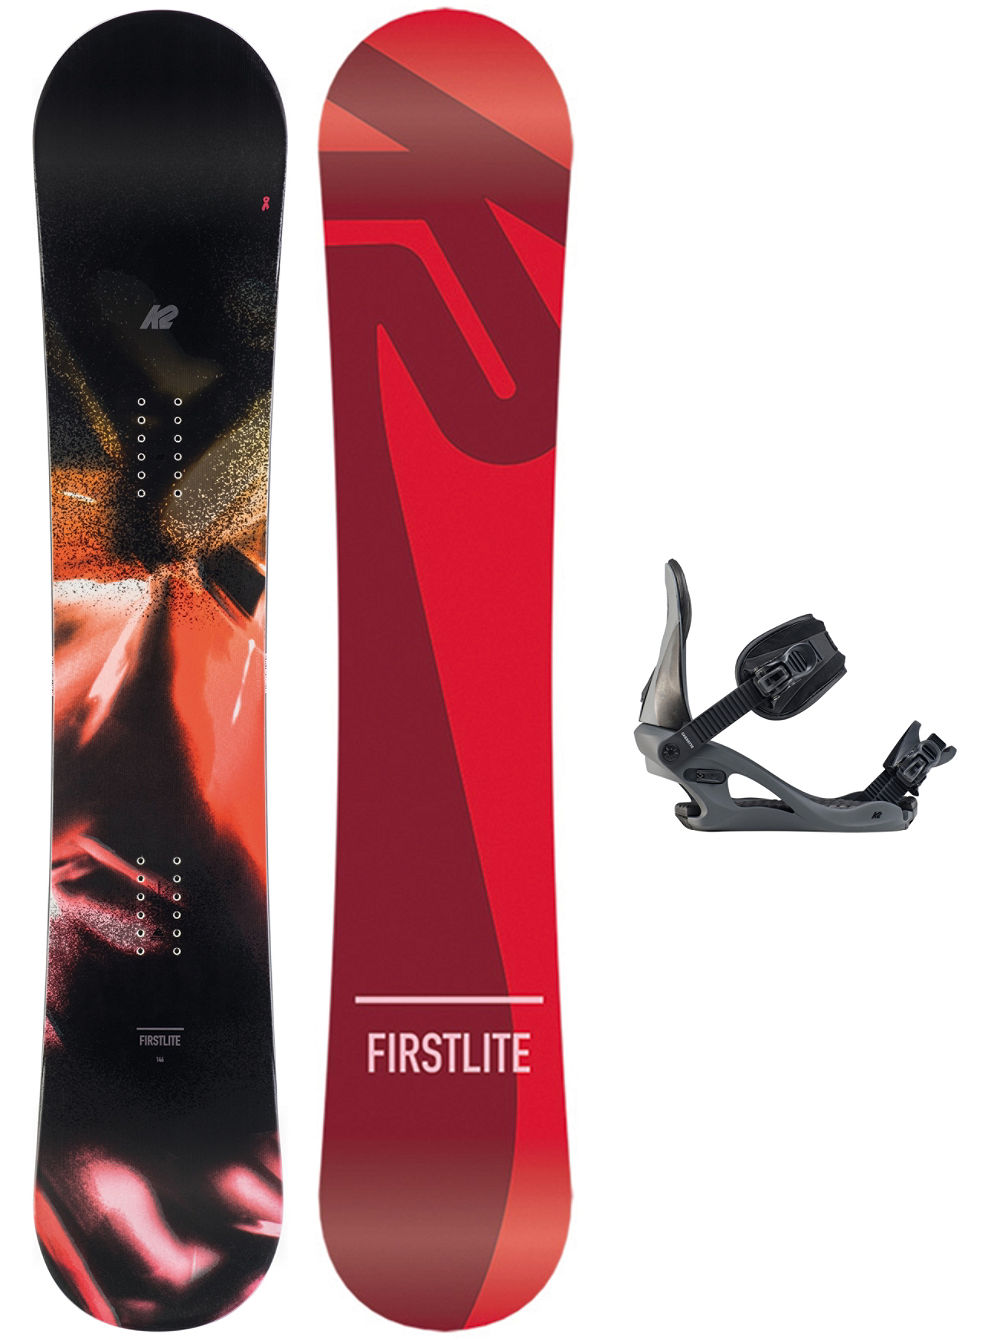 First Lite 142 + Casette M 2020 Snowboard Set